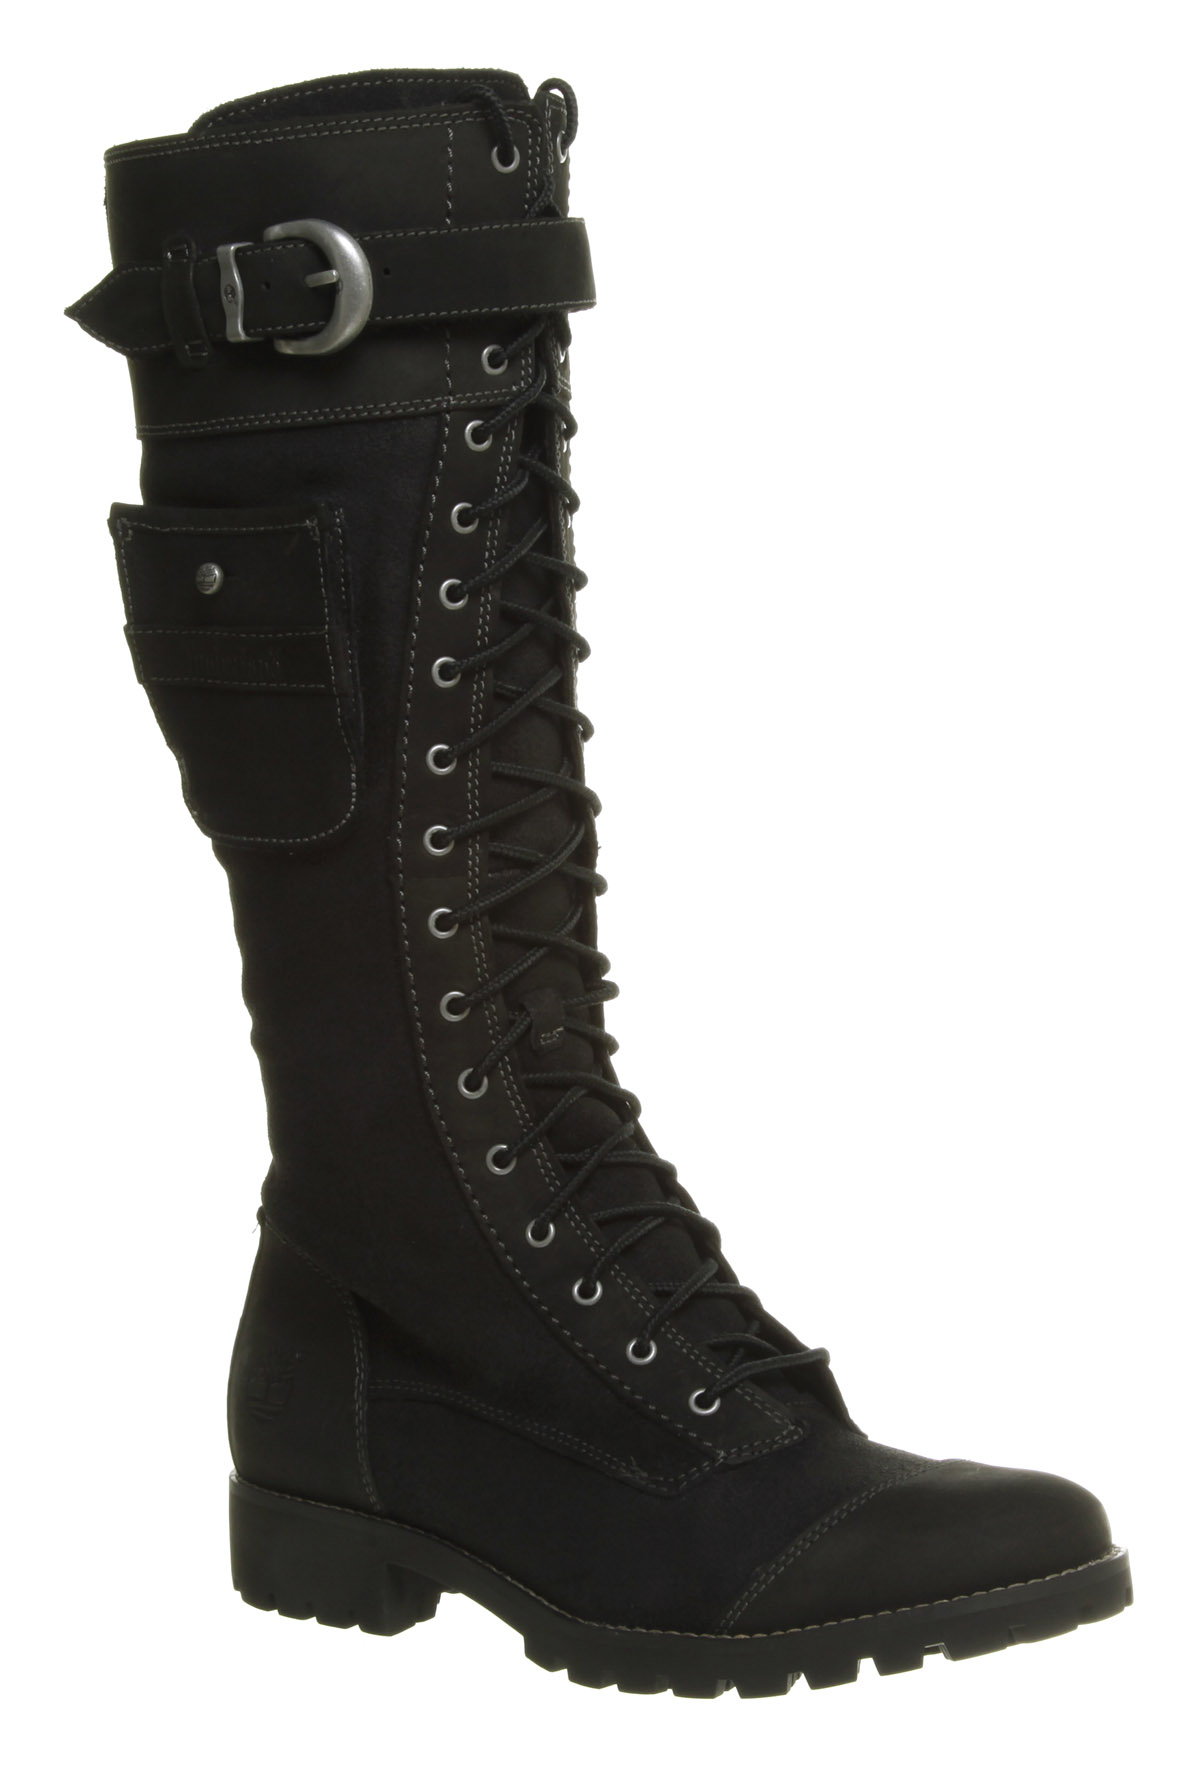 Women's Timberland Atrus Knee High Zip/Lace Up Black ...